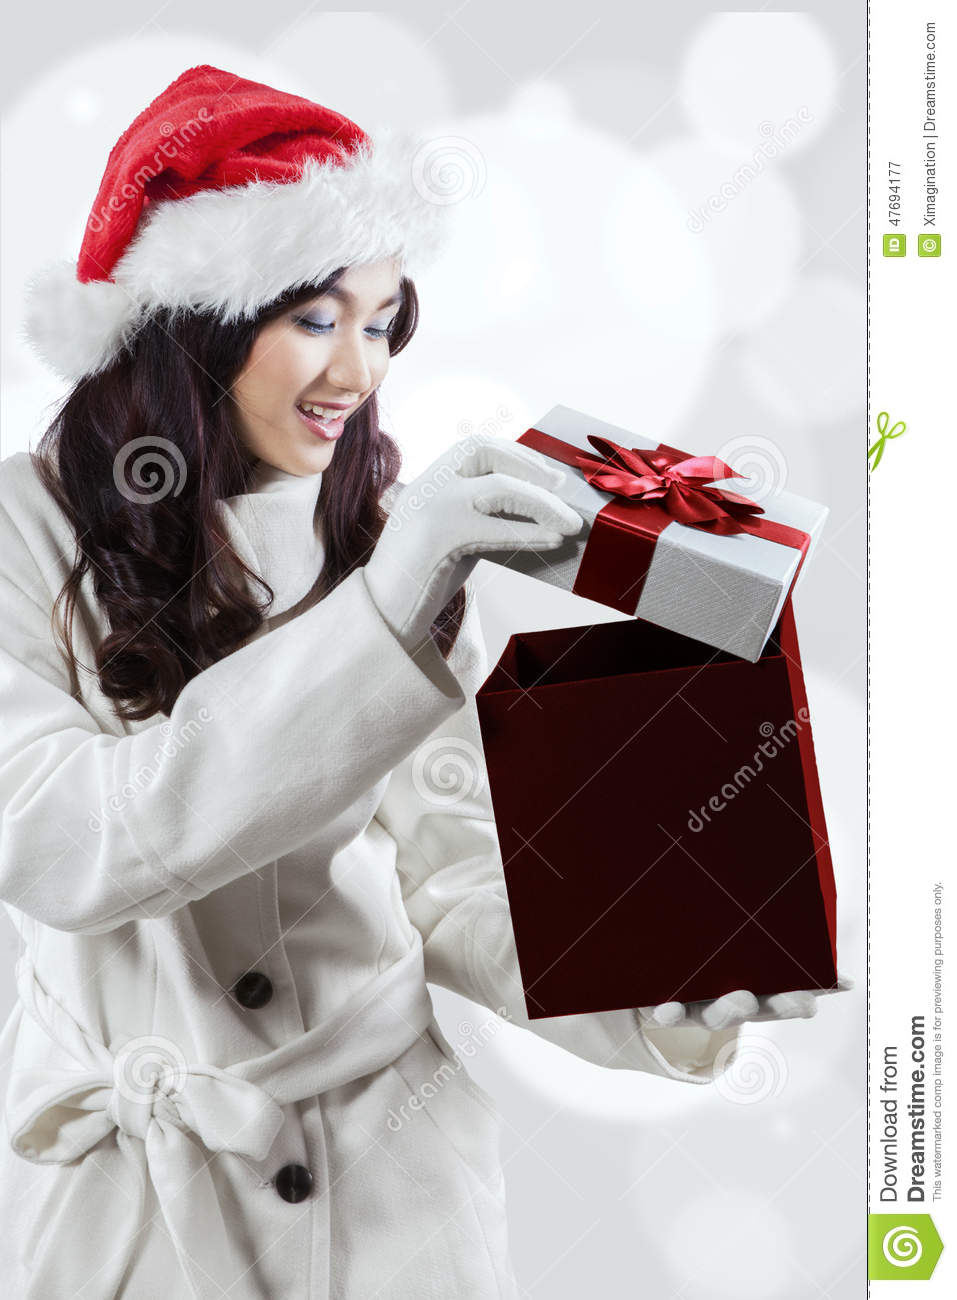 Shocked girl in winter clothes opening a gift